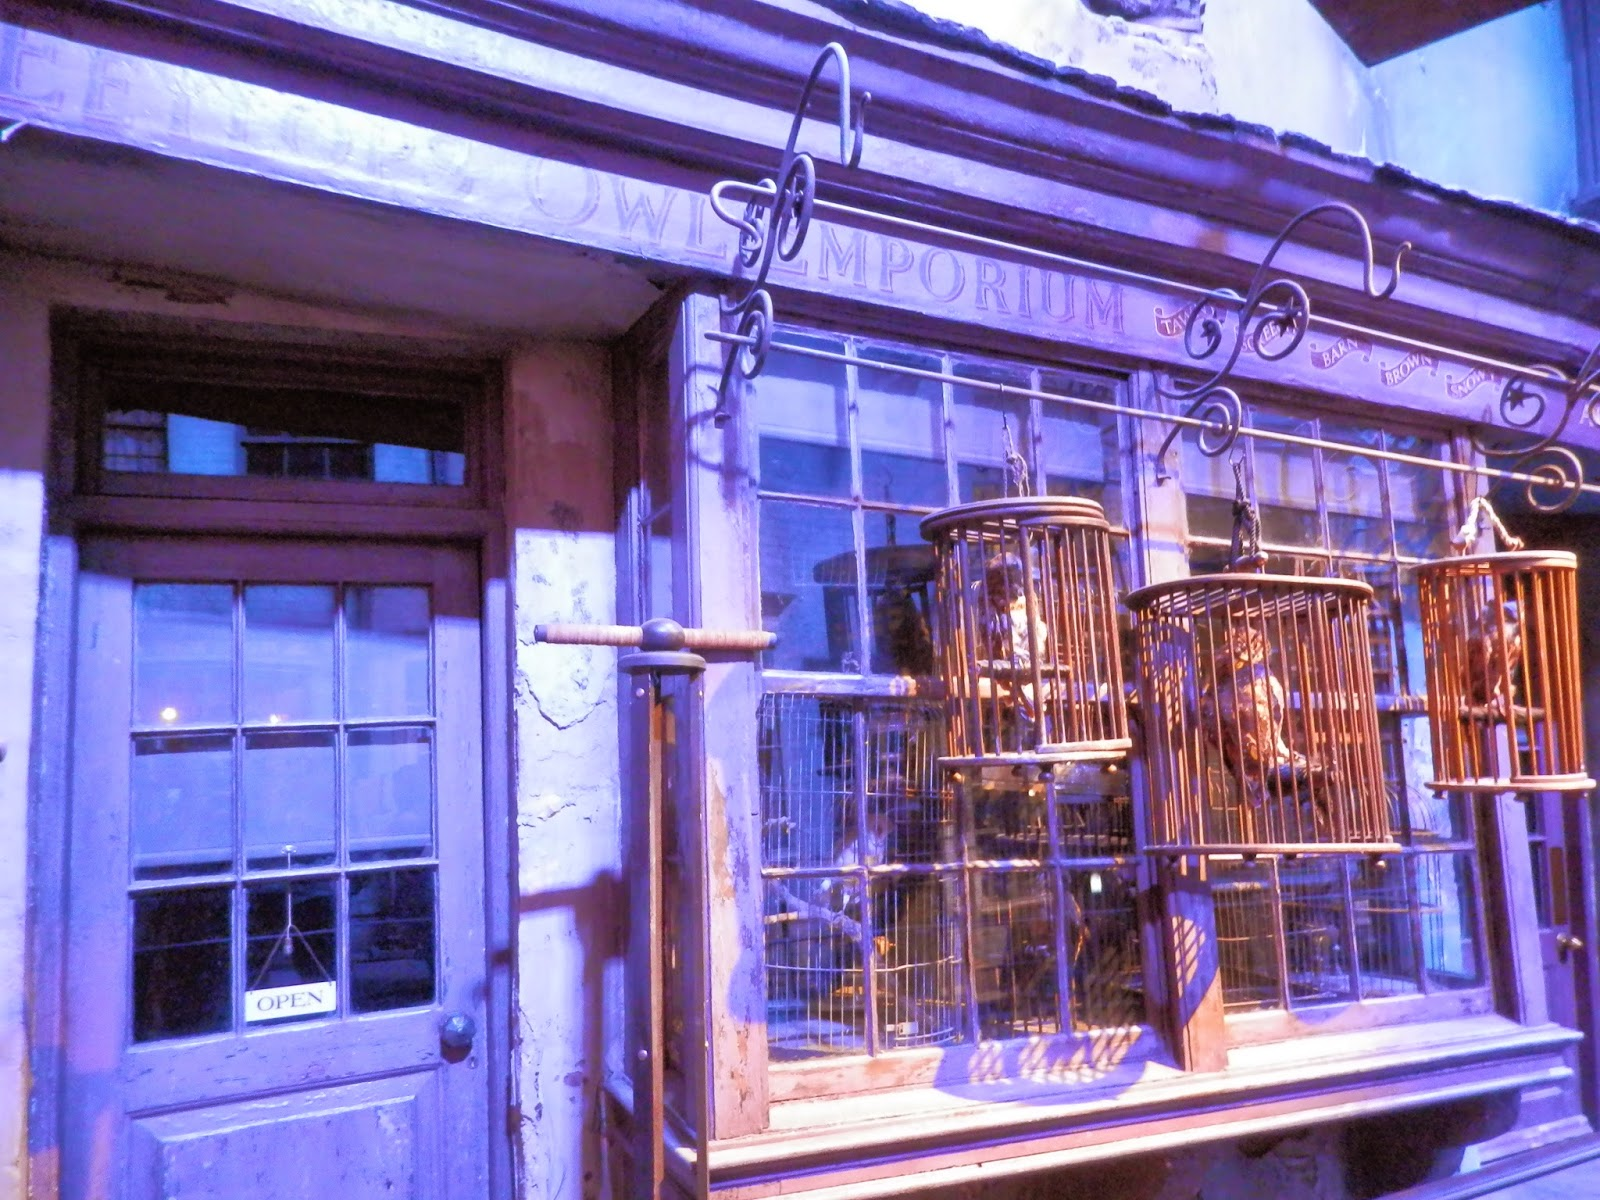 Harry Potter Studio Tour, London. secondhandsusie.blogspot.com